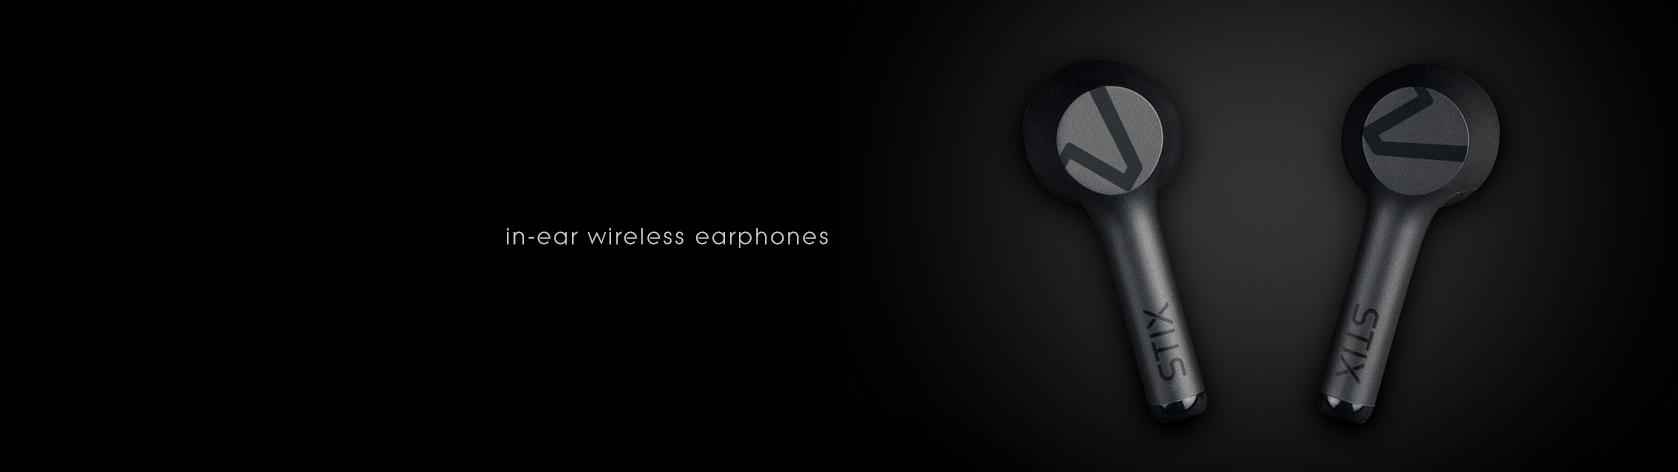 In-Ear Wireless